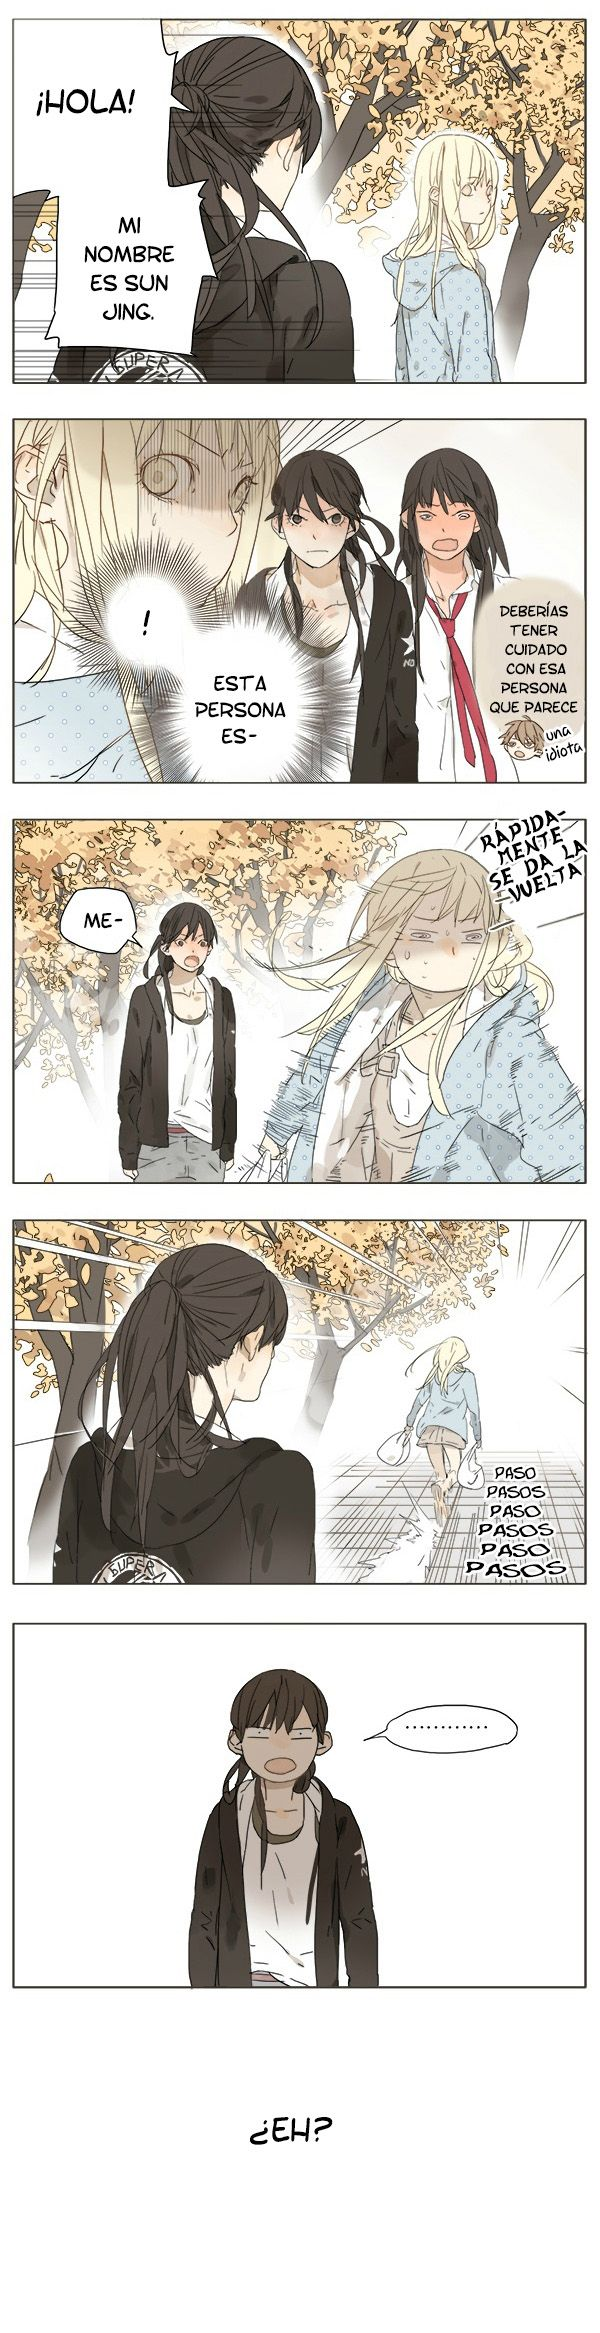 Tamen de Gushi (Their Stories) 14